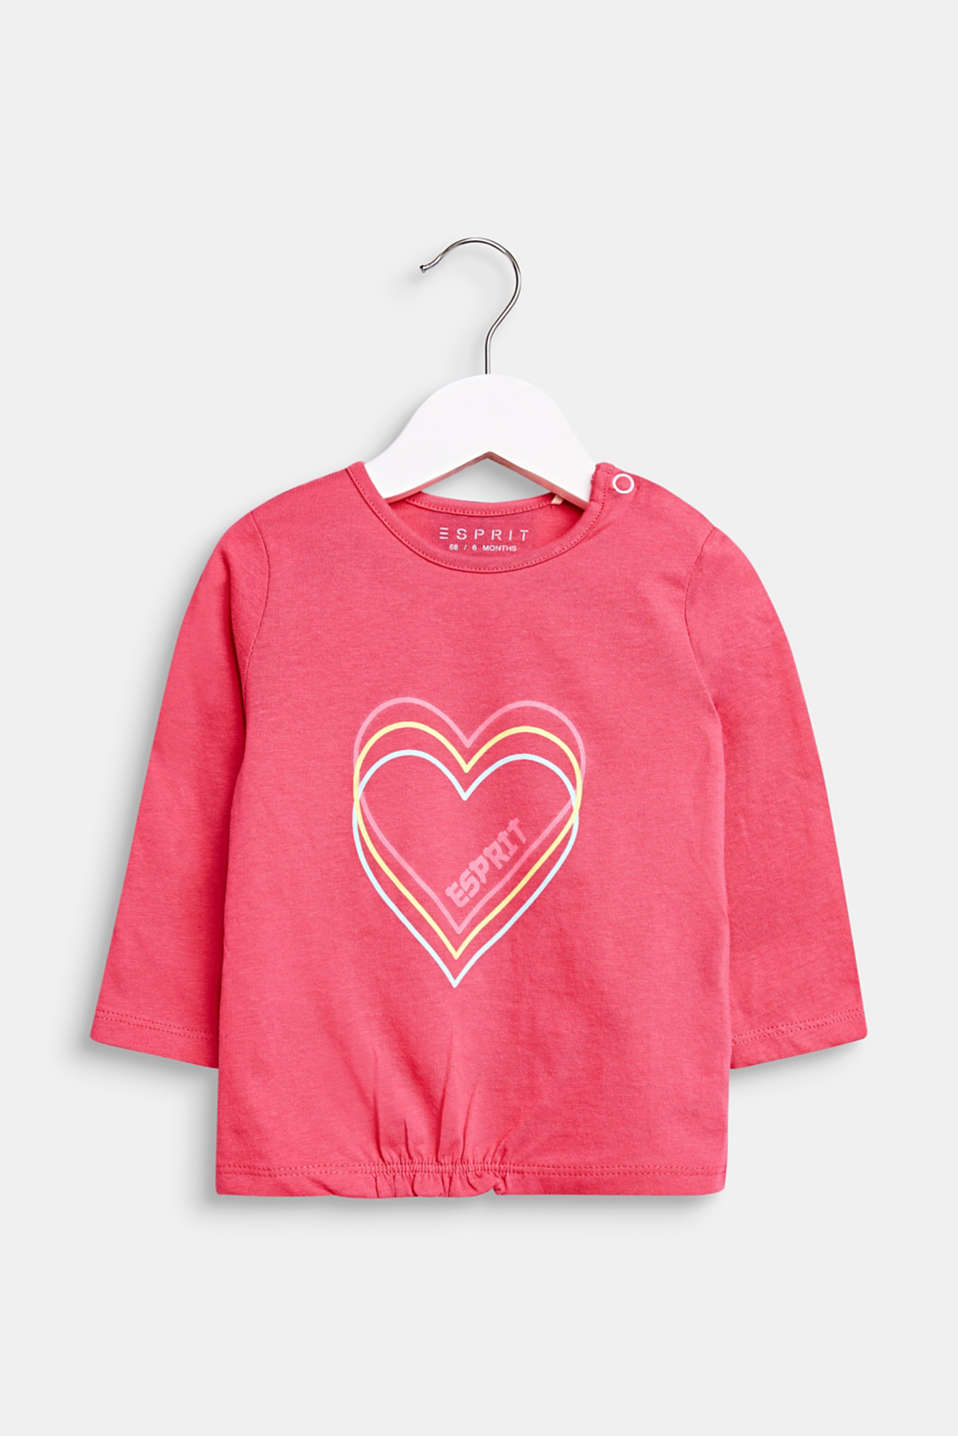 Esprit - Long sleeve top with a heart print, 100% cotton